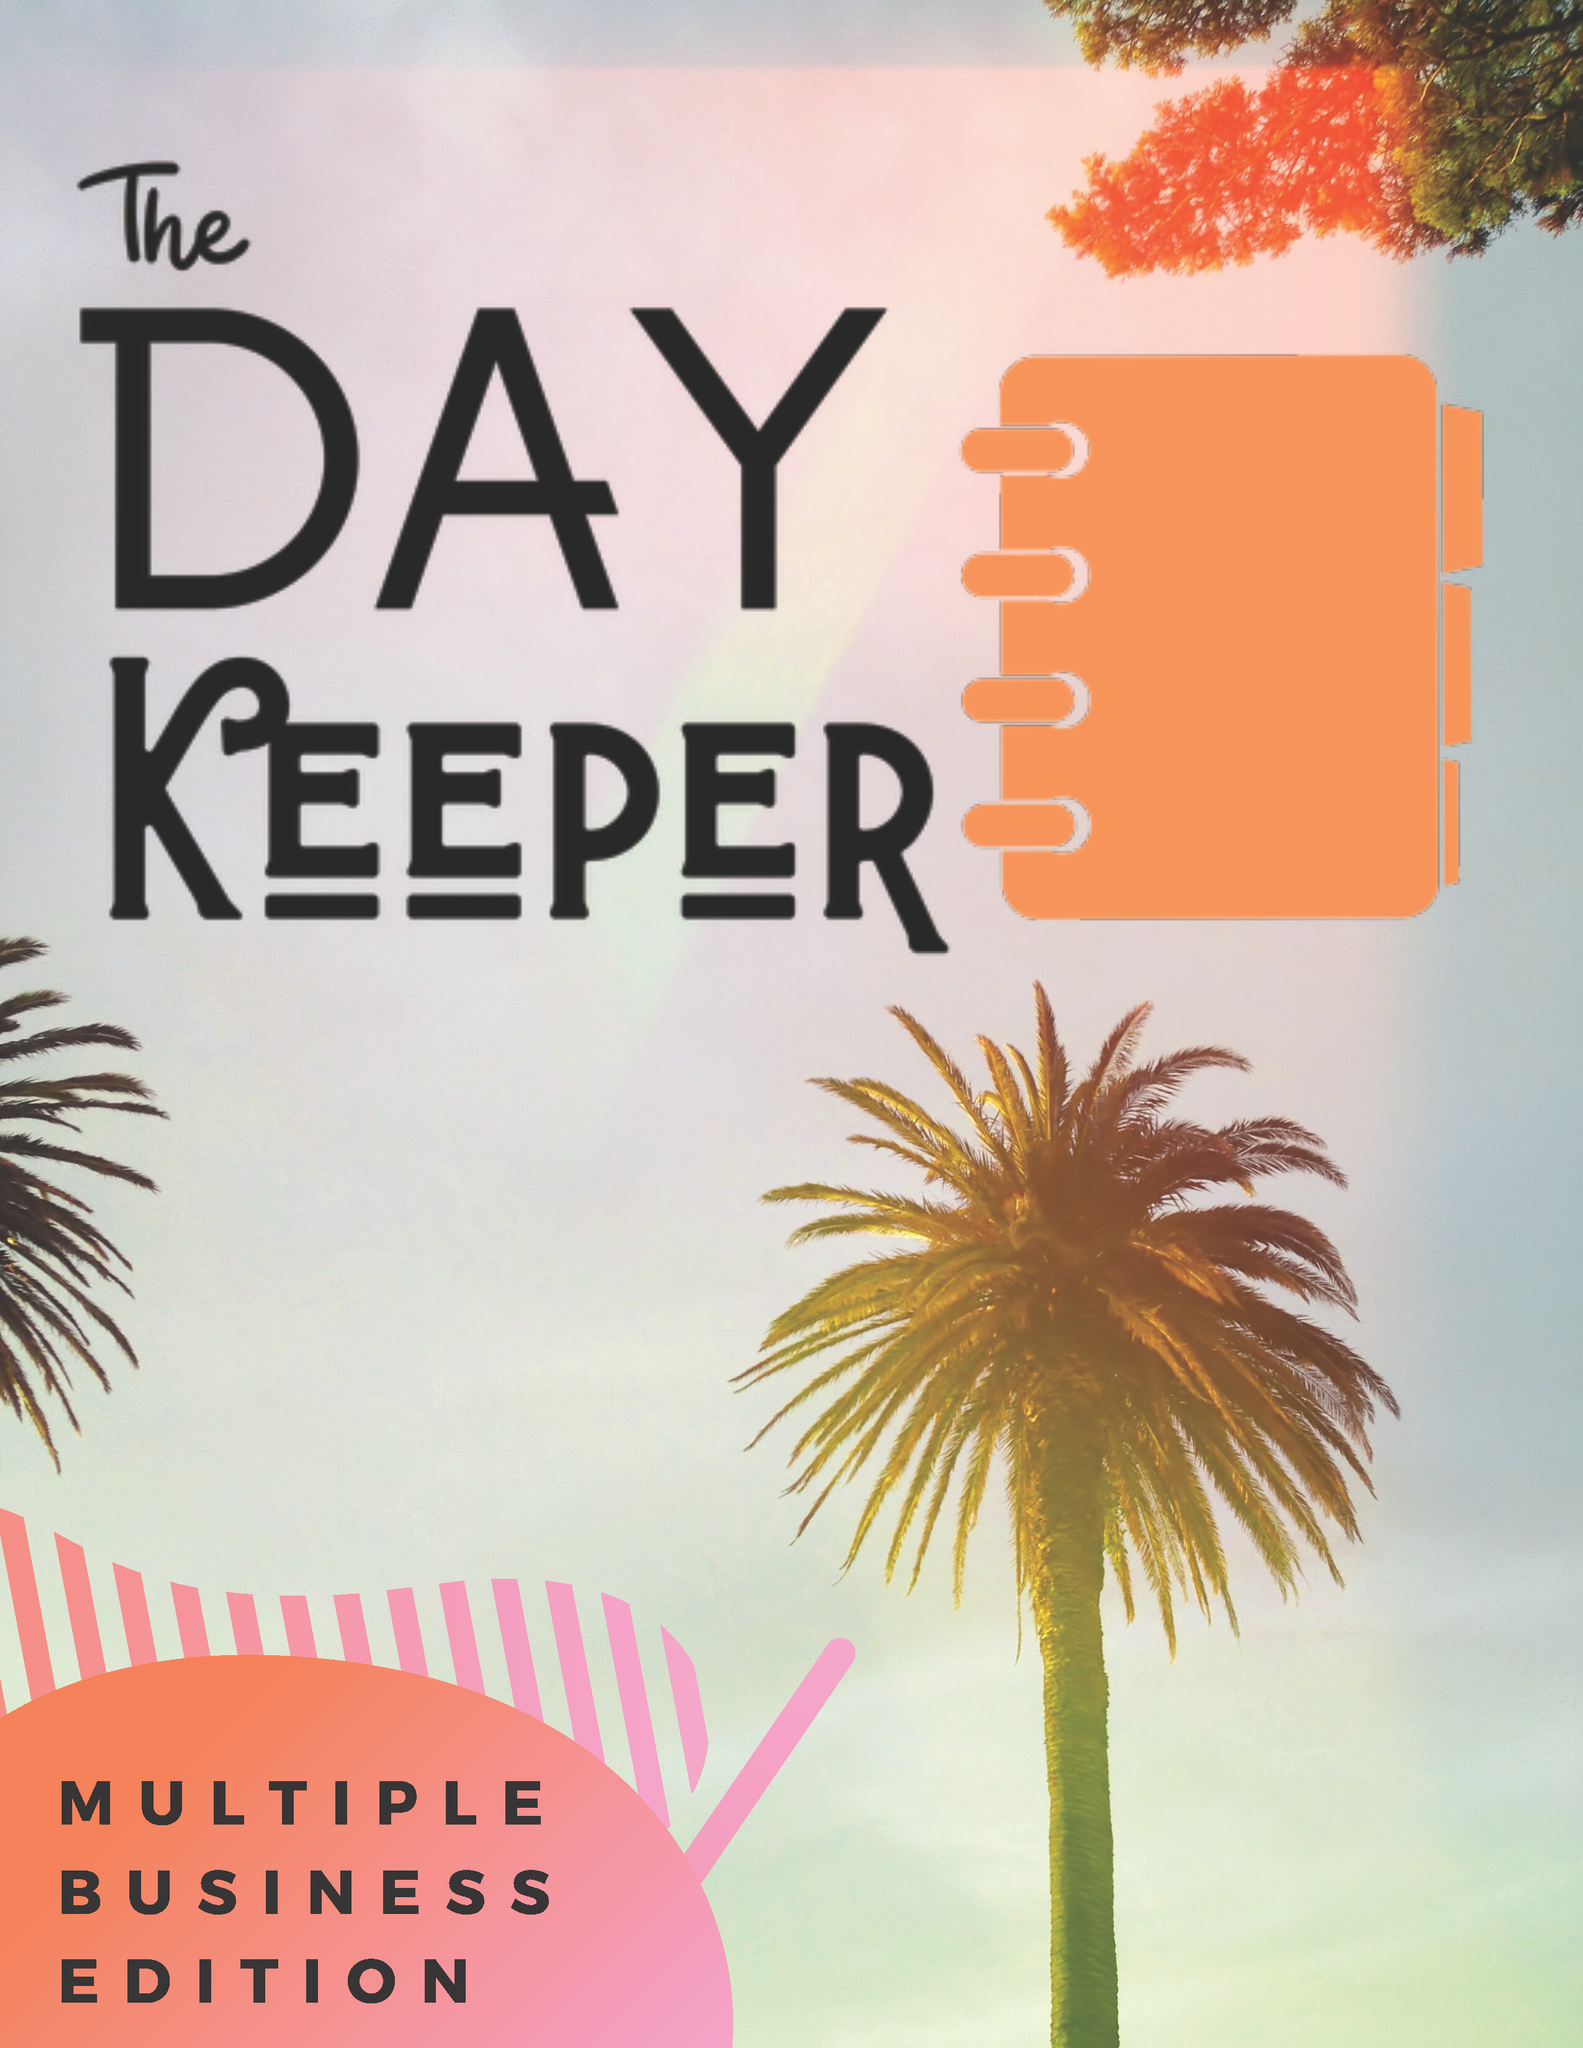 The Day Keeper